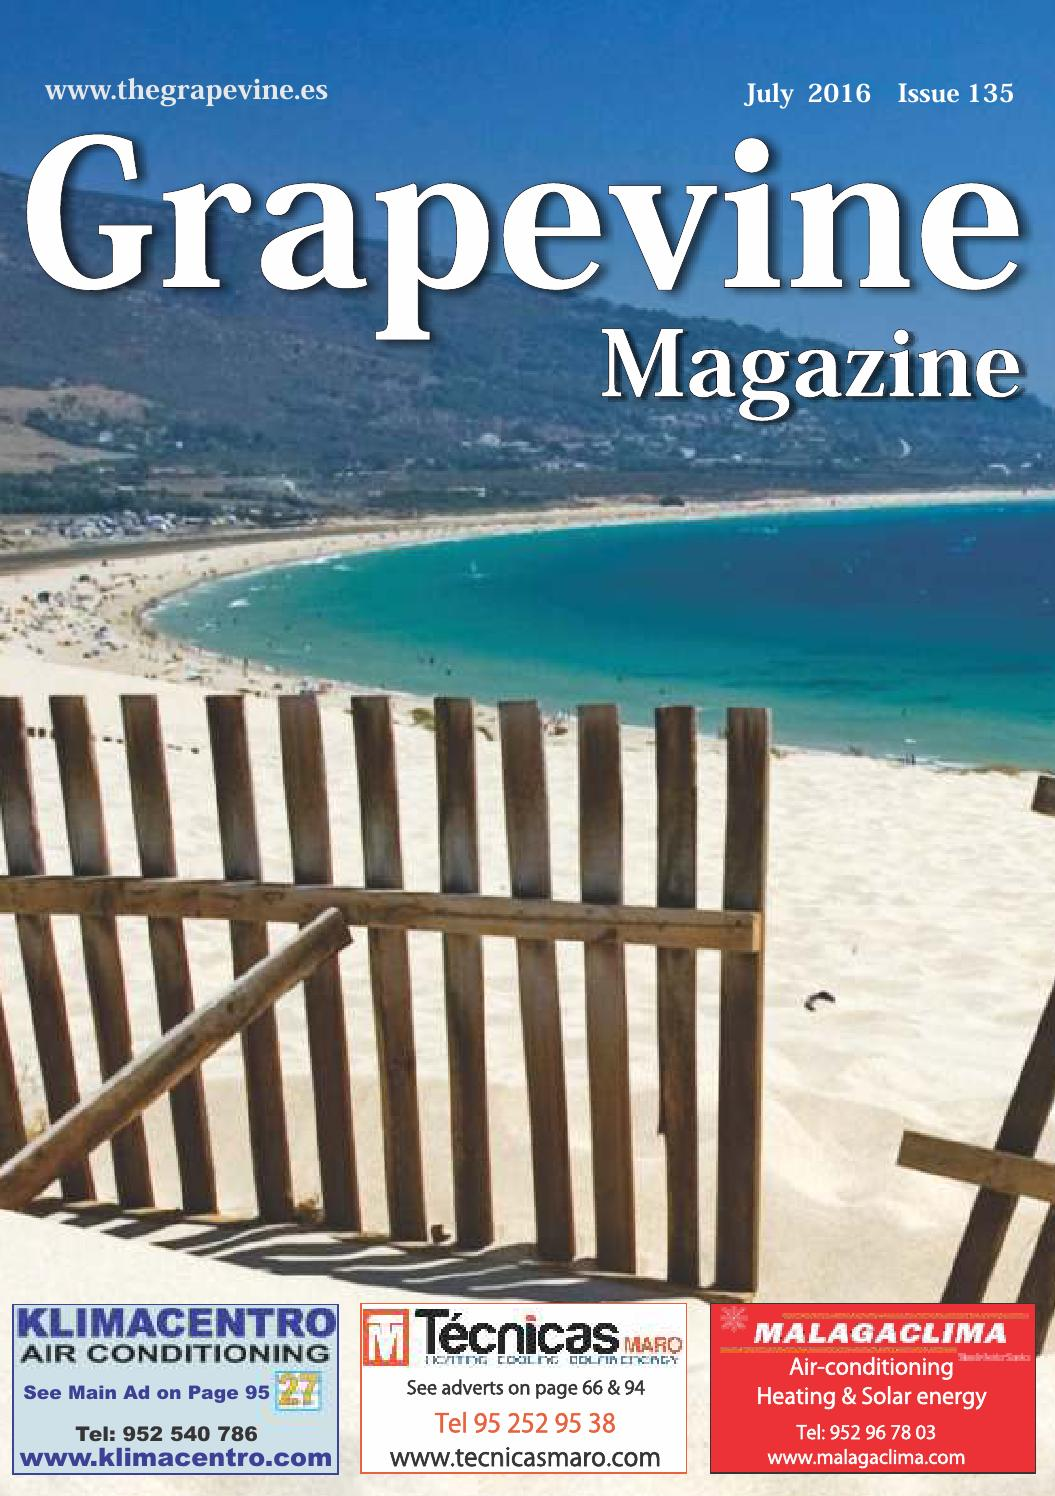 The Grapevine Magazine July 2016 By The Grapevine Magazine